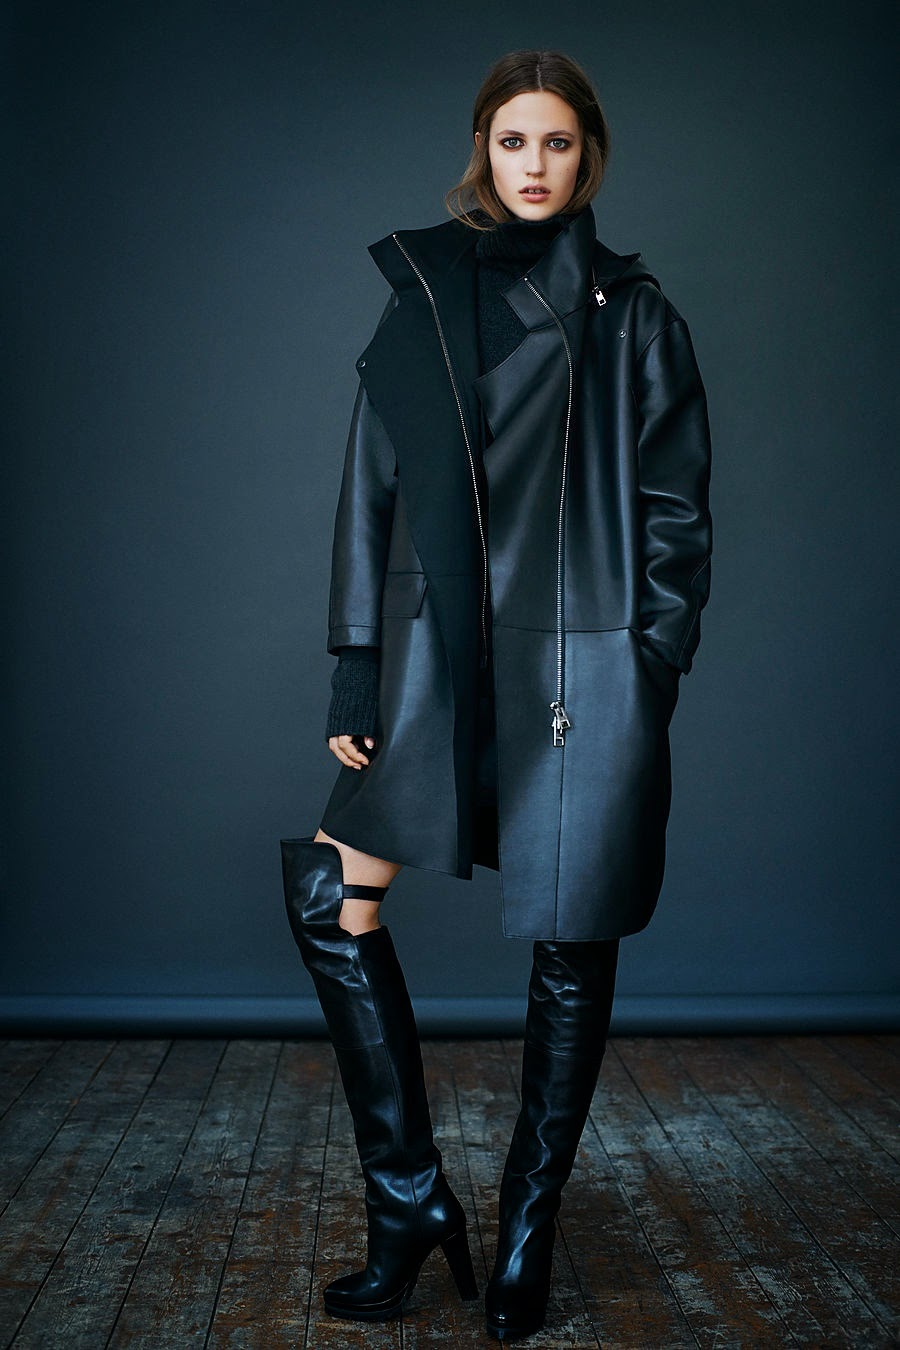 all saints leather fall fashion inspiration outfits nyfw lfw fur whowhatwear blog runway street style